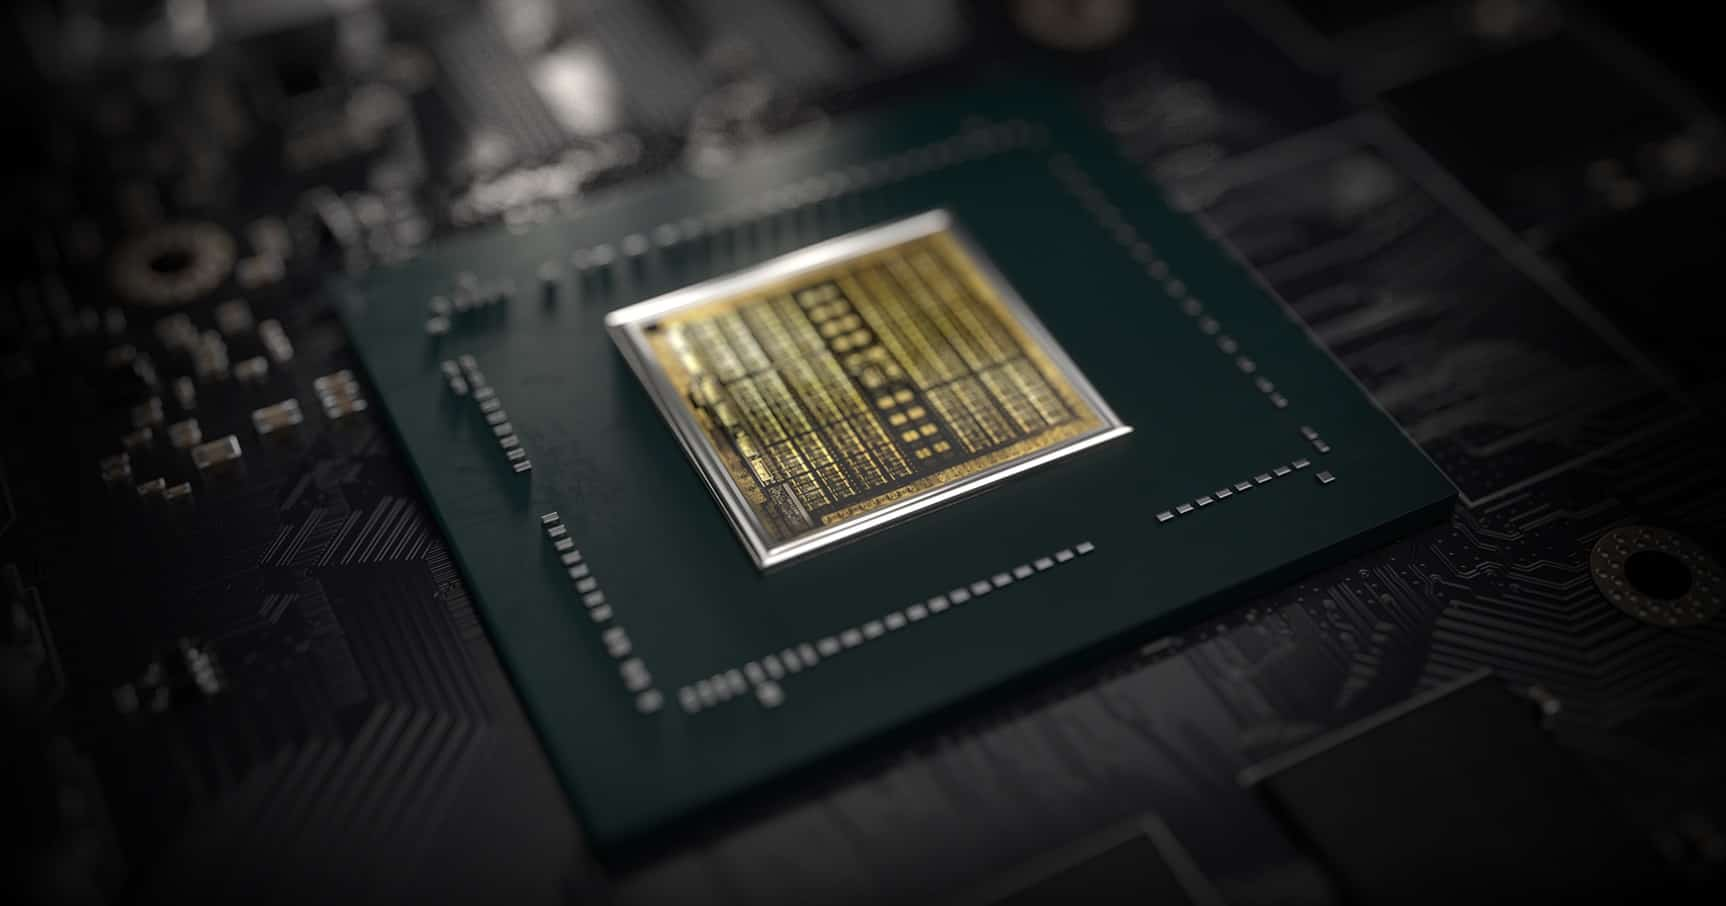 NVIDIA GTX 1650Ti with GDDR6 memory to be launched in October